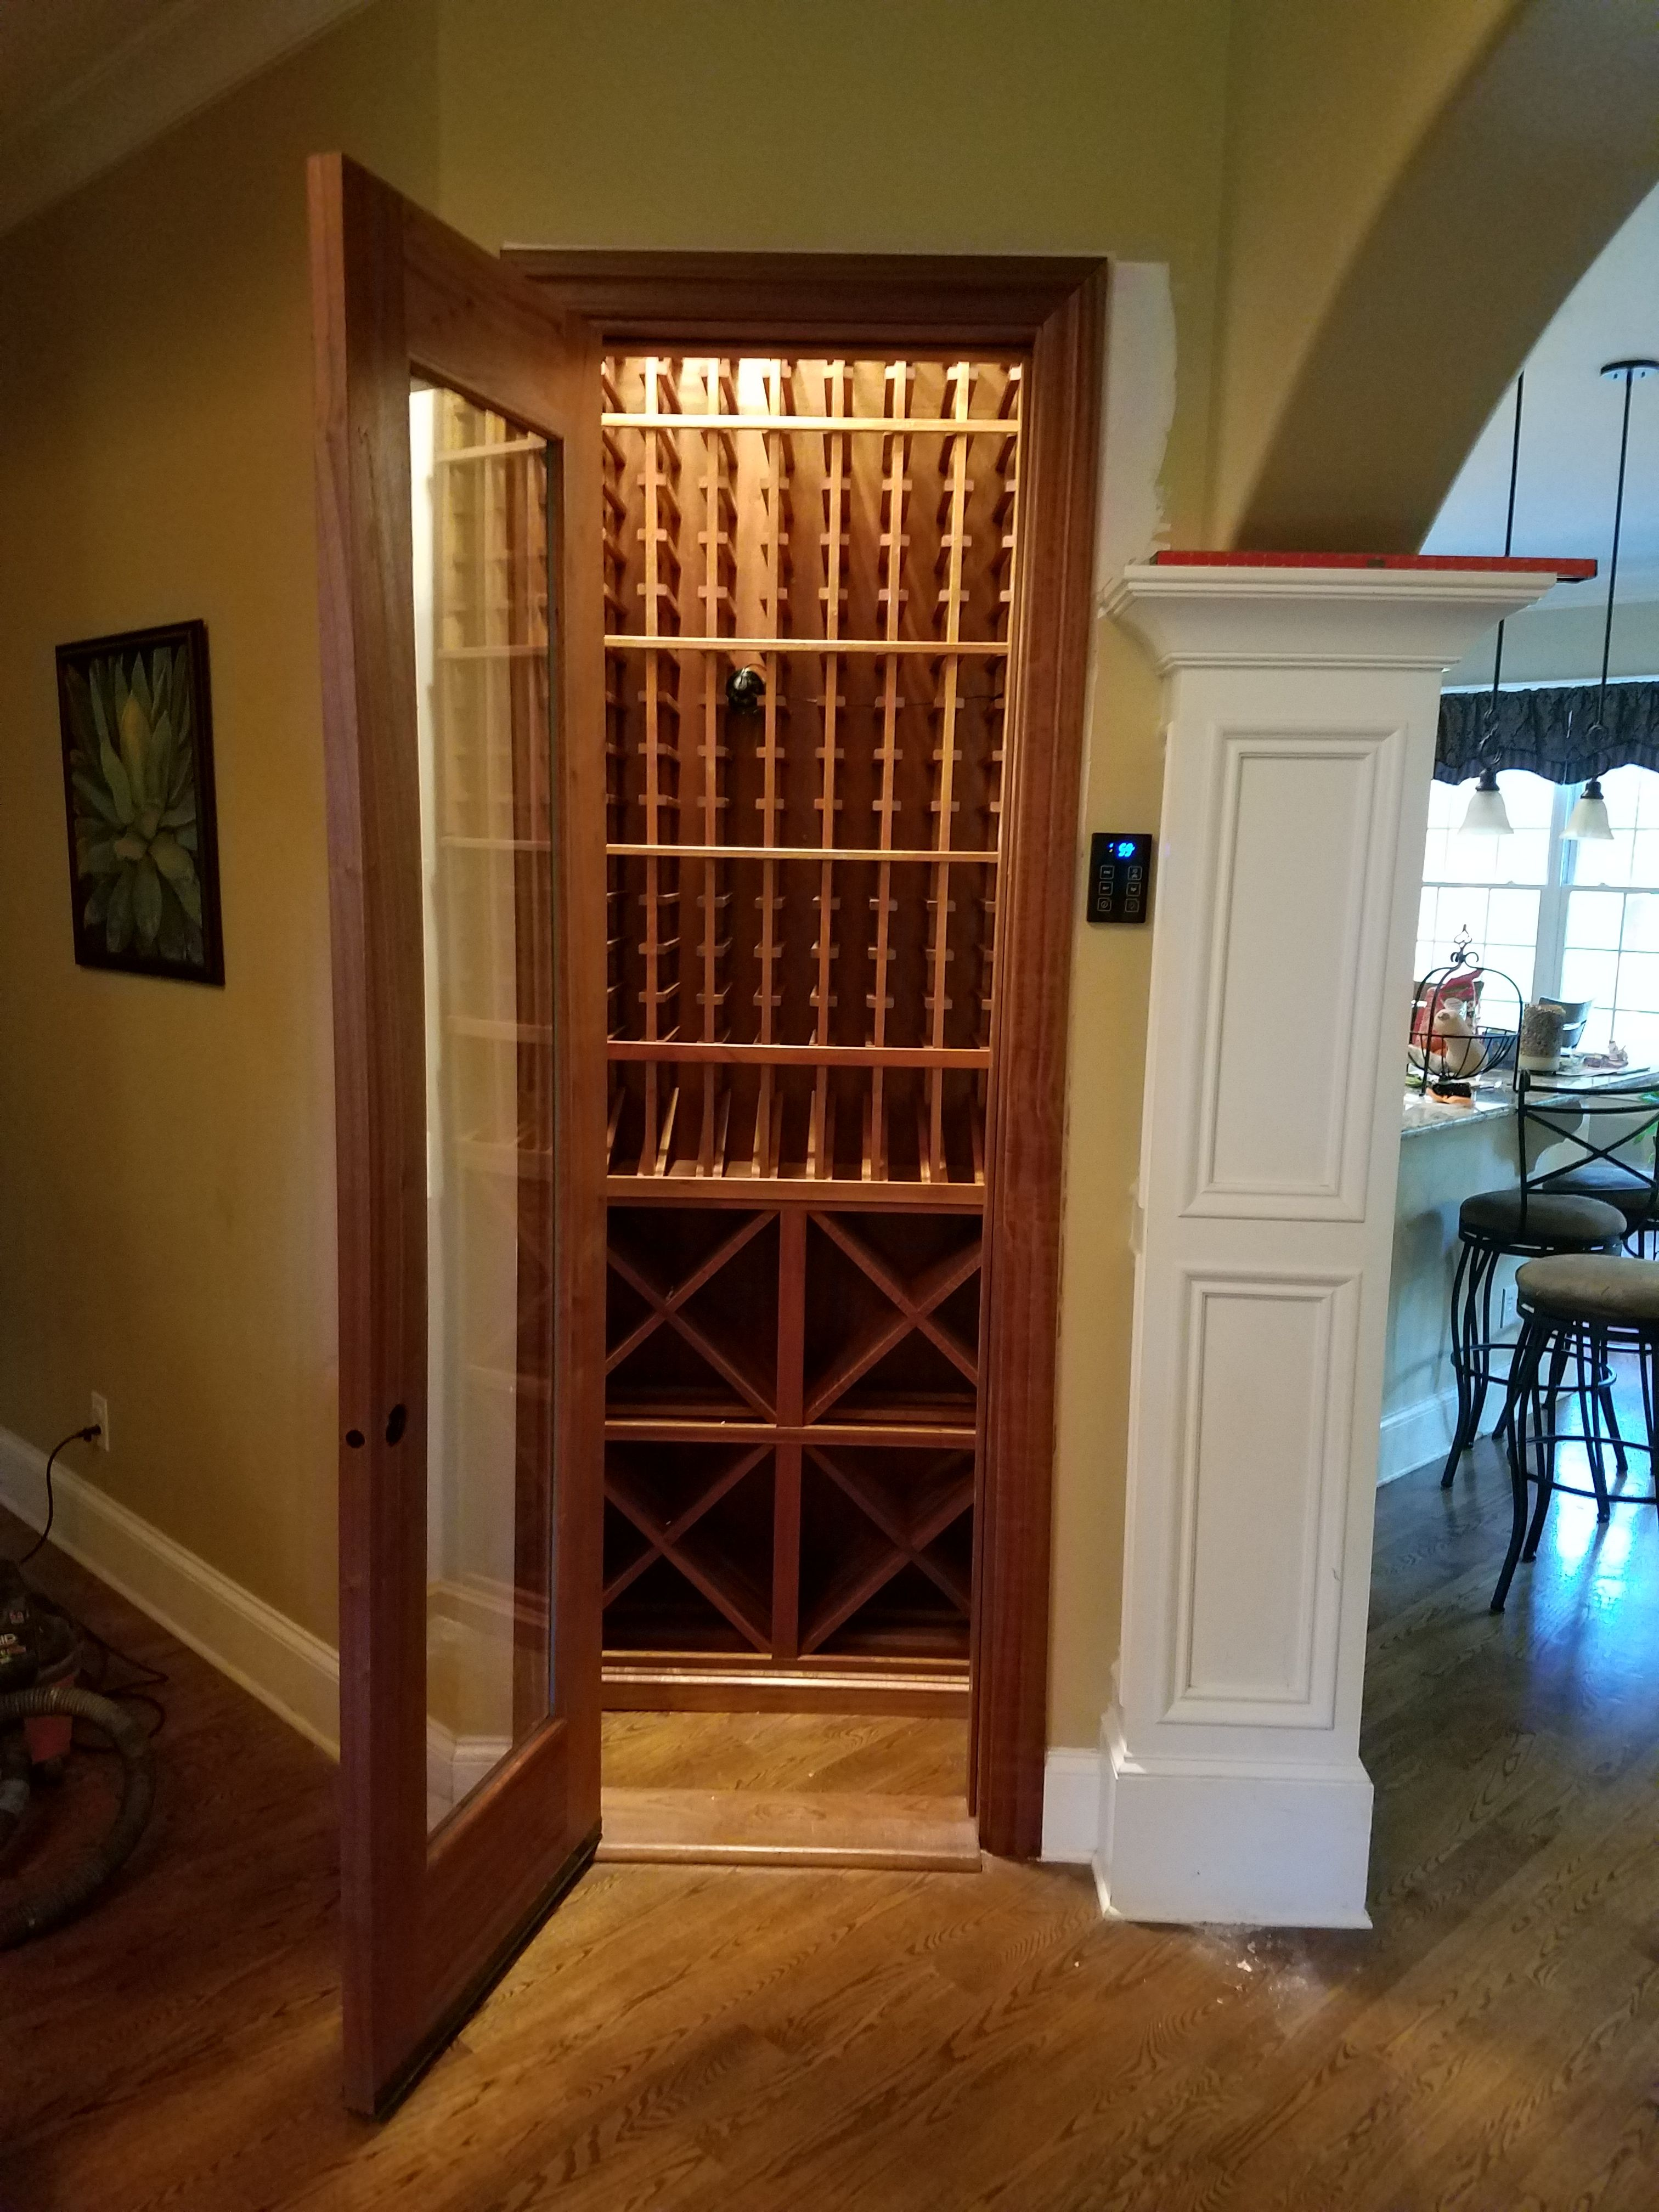 Closet converted into a climate controlled cellar. Wine